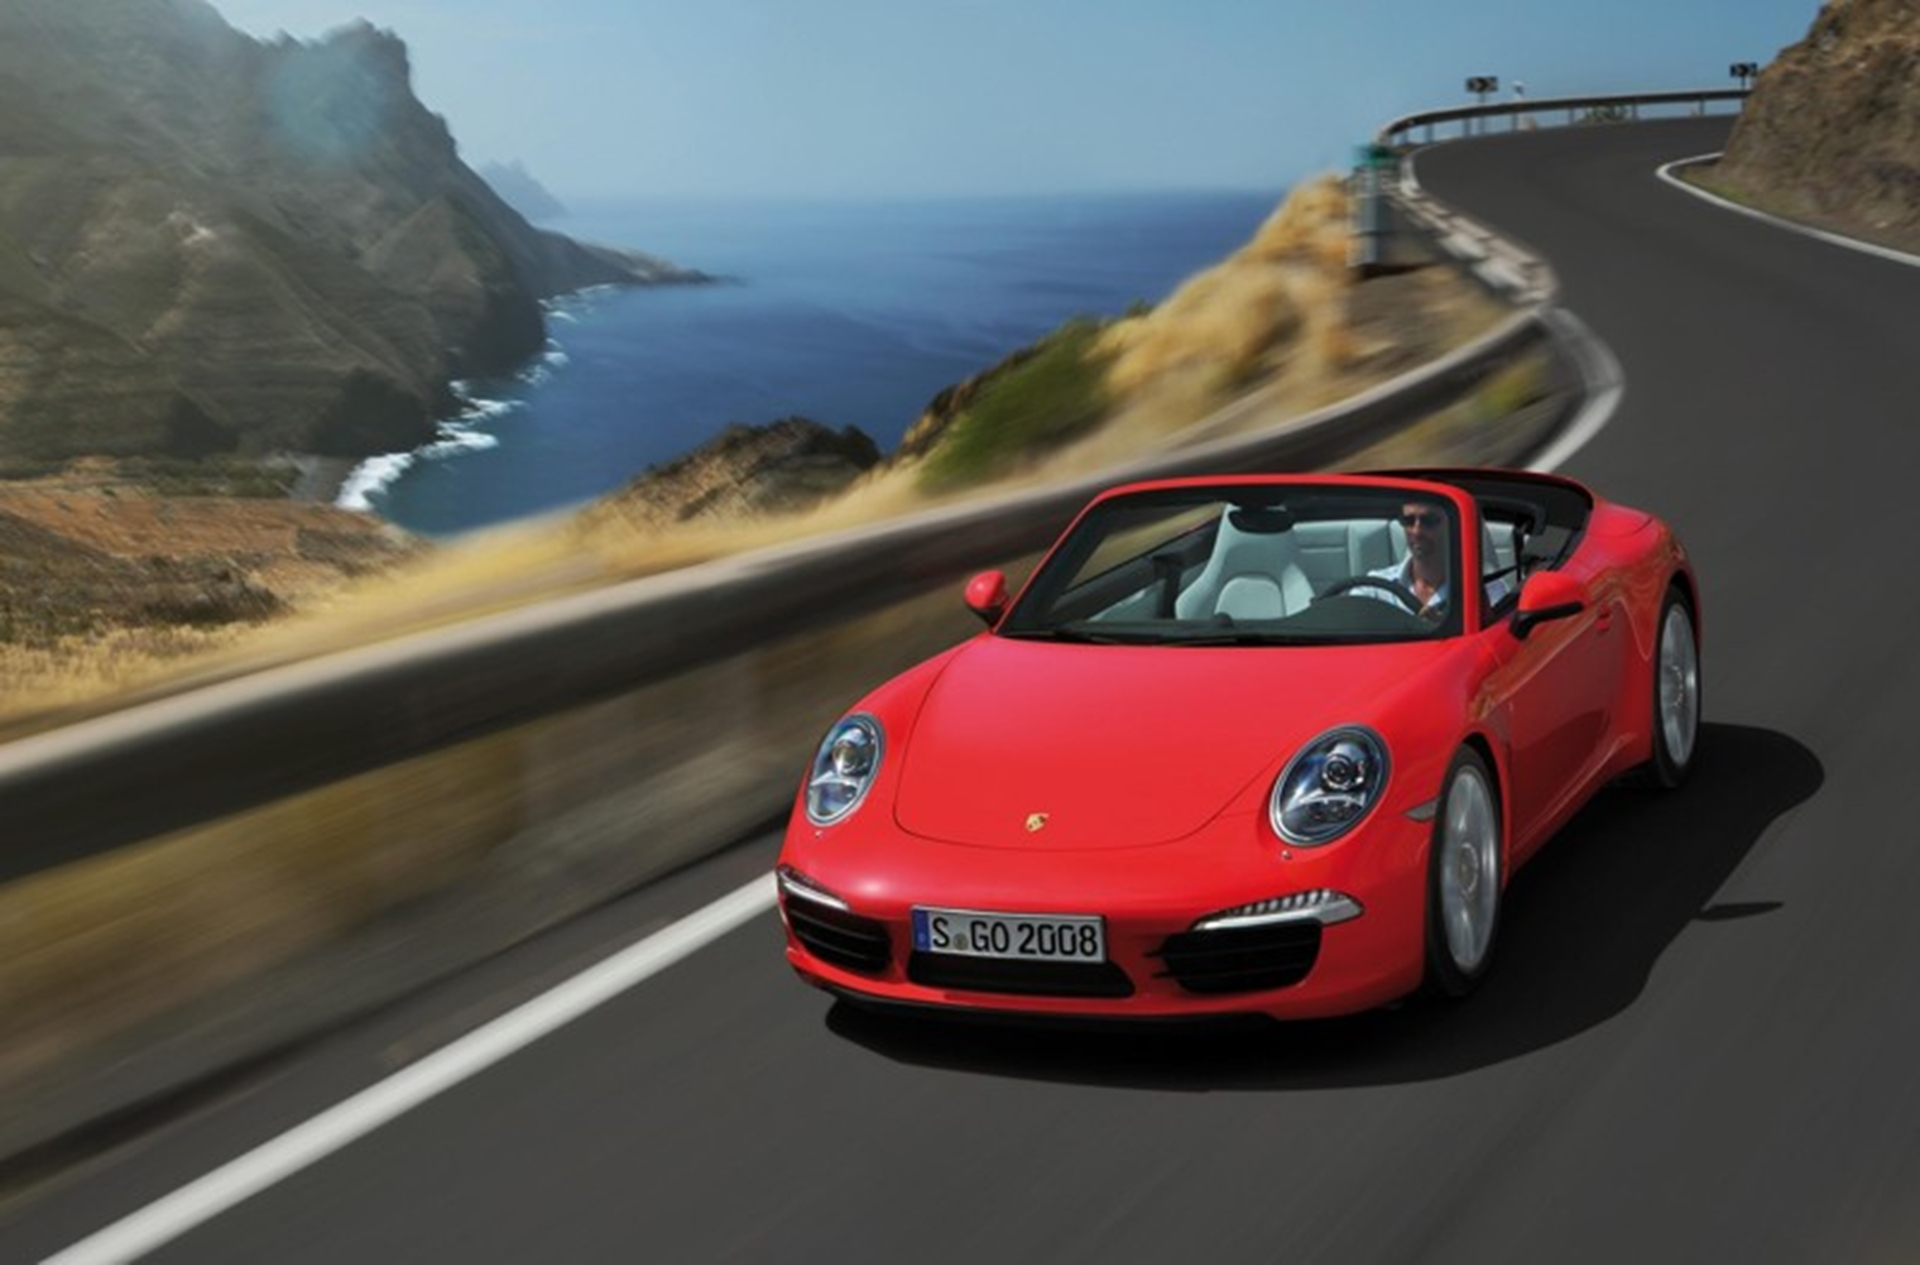 Porsche Carrera Cabriolet 2012 Red